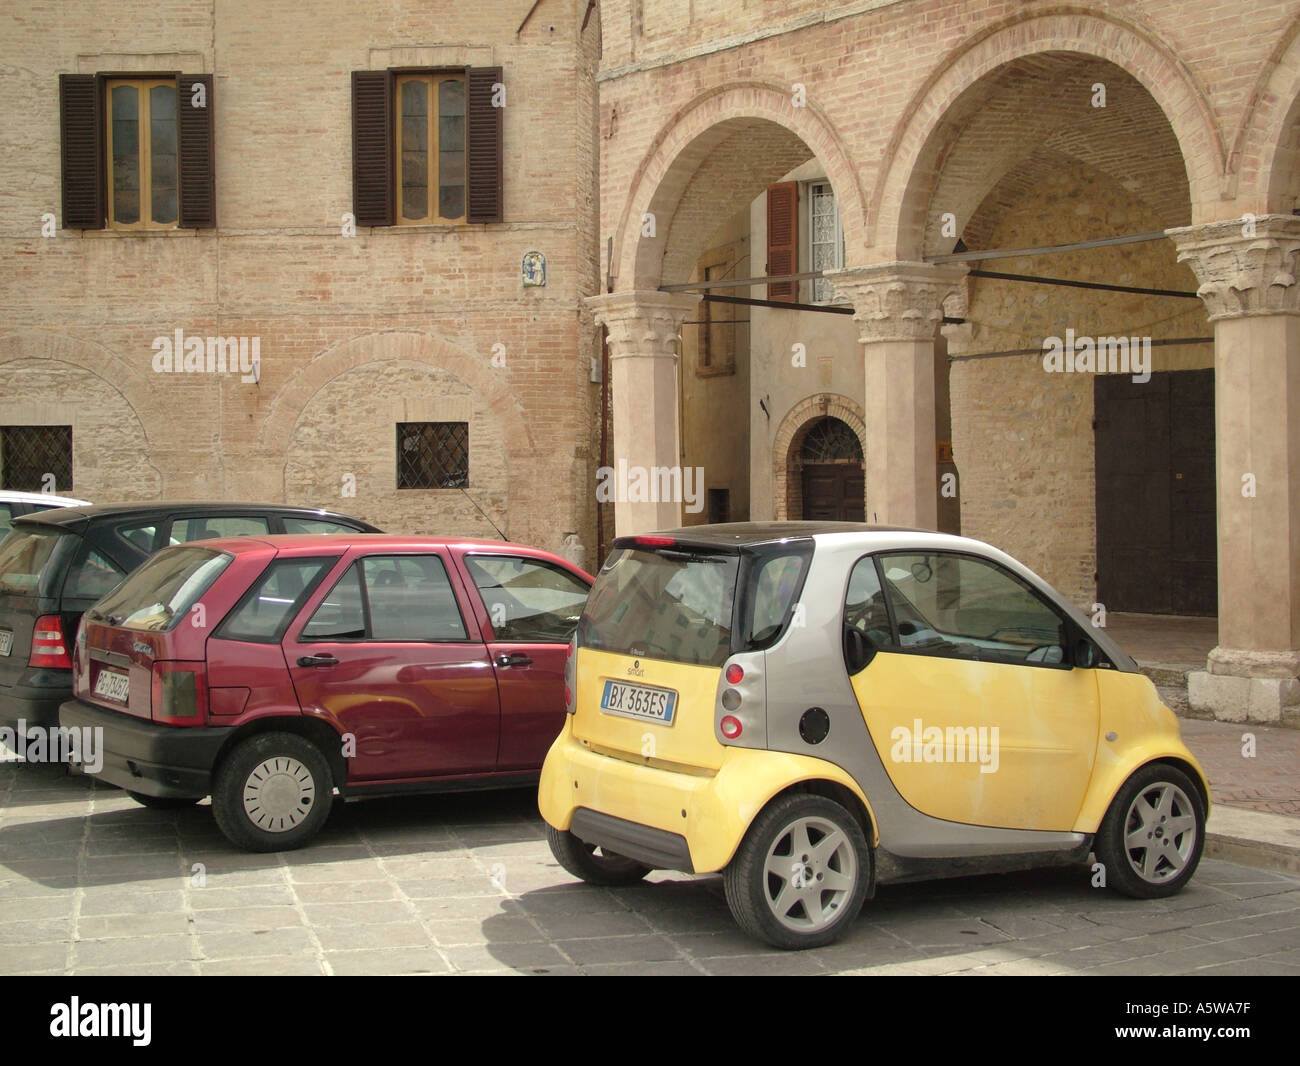 Smart Car Cars Small Tiny Stock Photos & Smart Car Cars Small Tiny ...